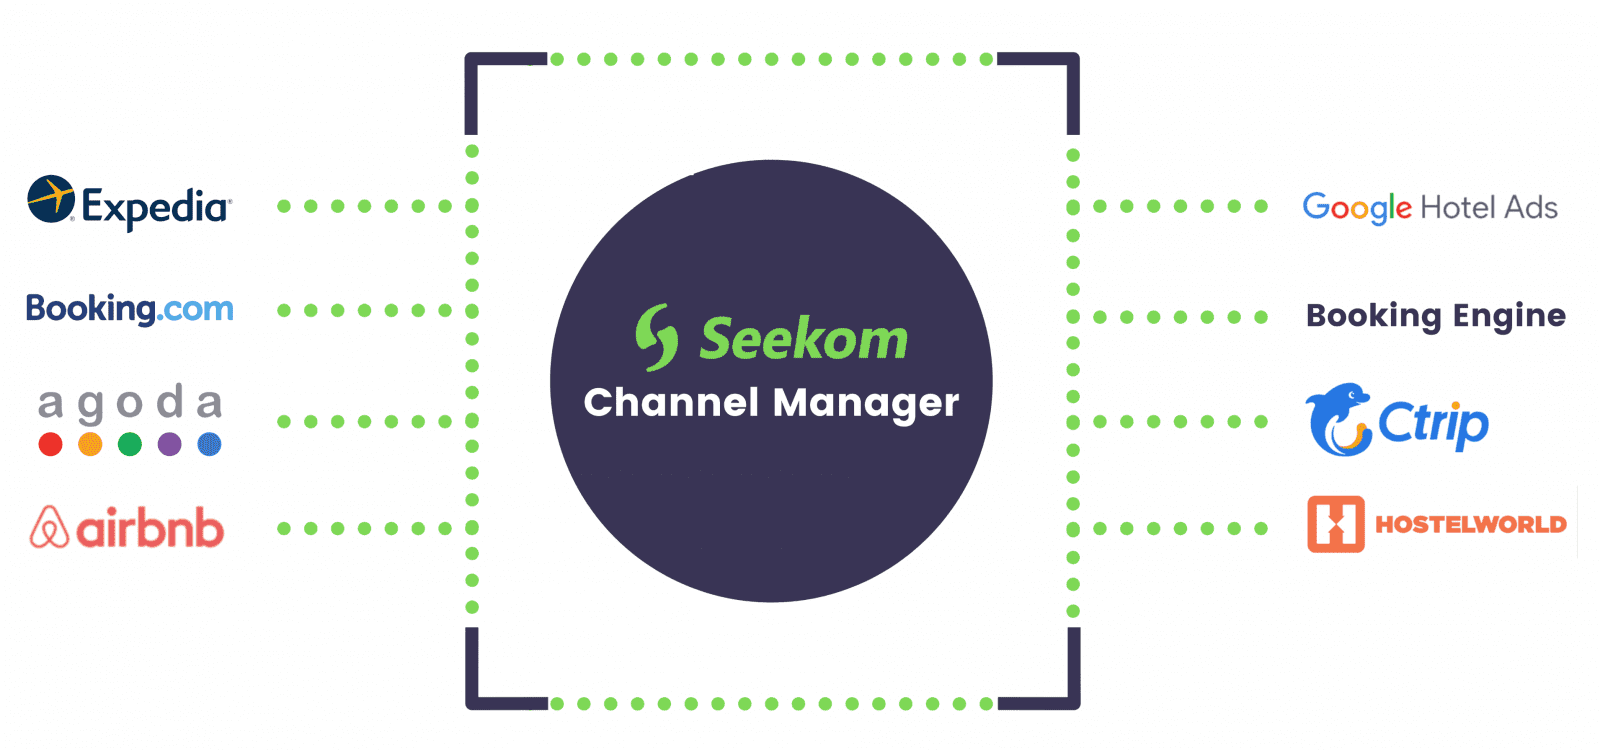 Channel Manager Seekom